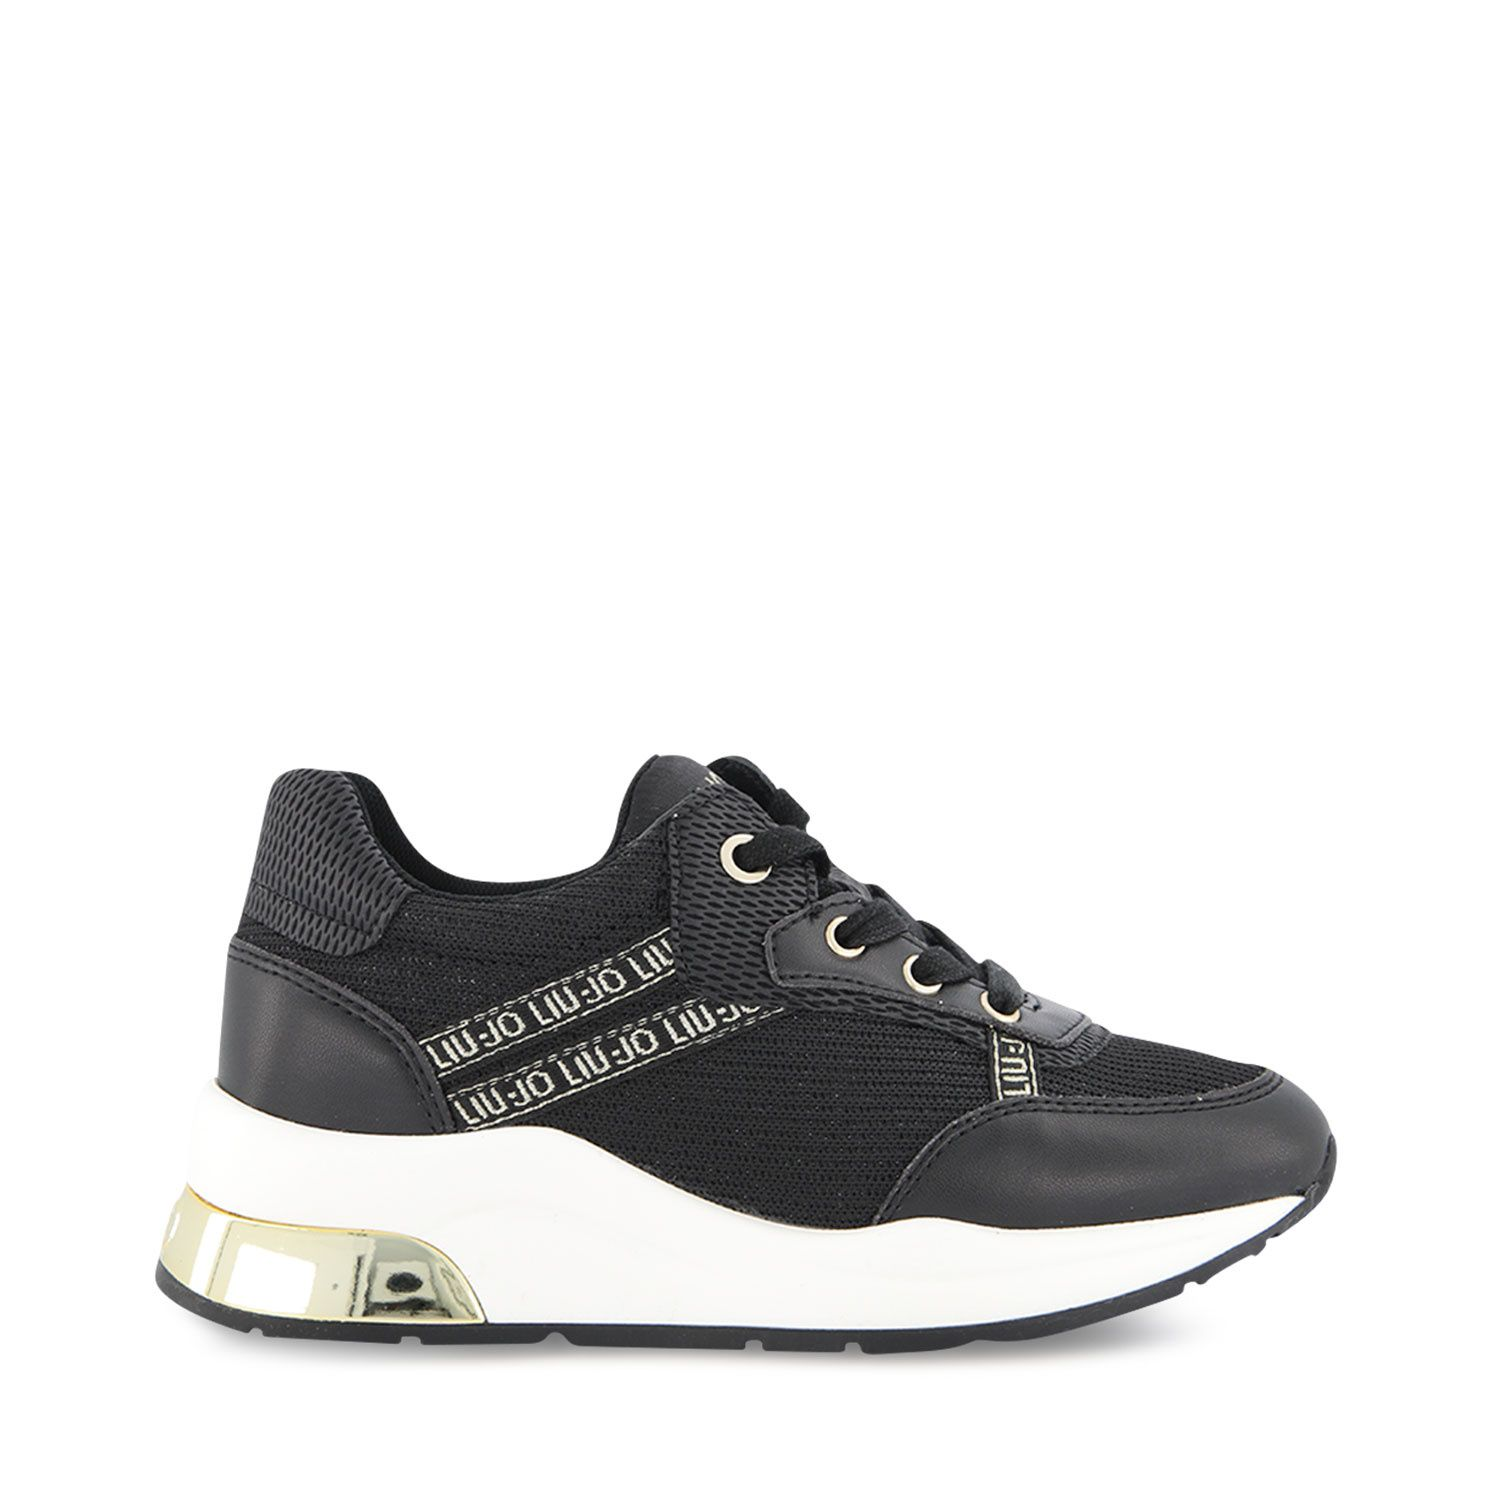 Picture of Liu Jo 4A1731 kids sneakers black